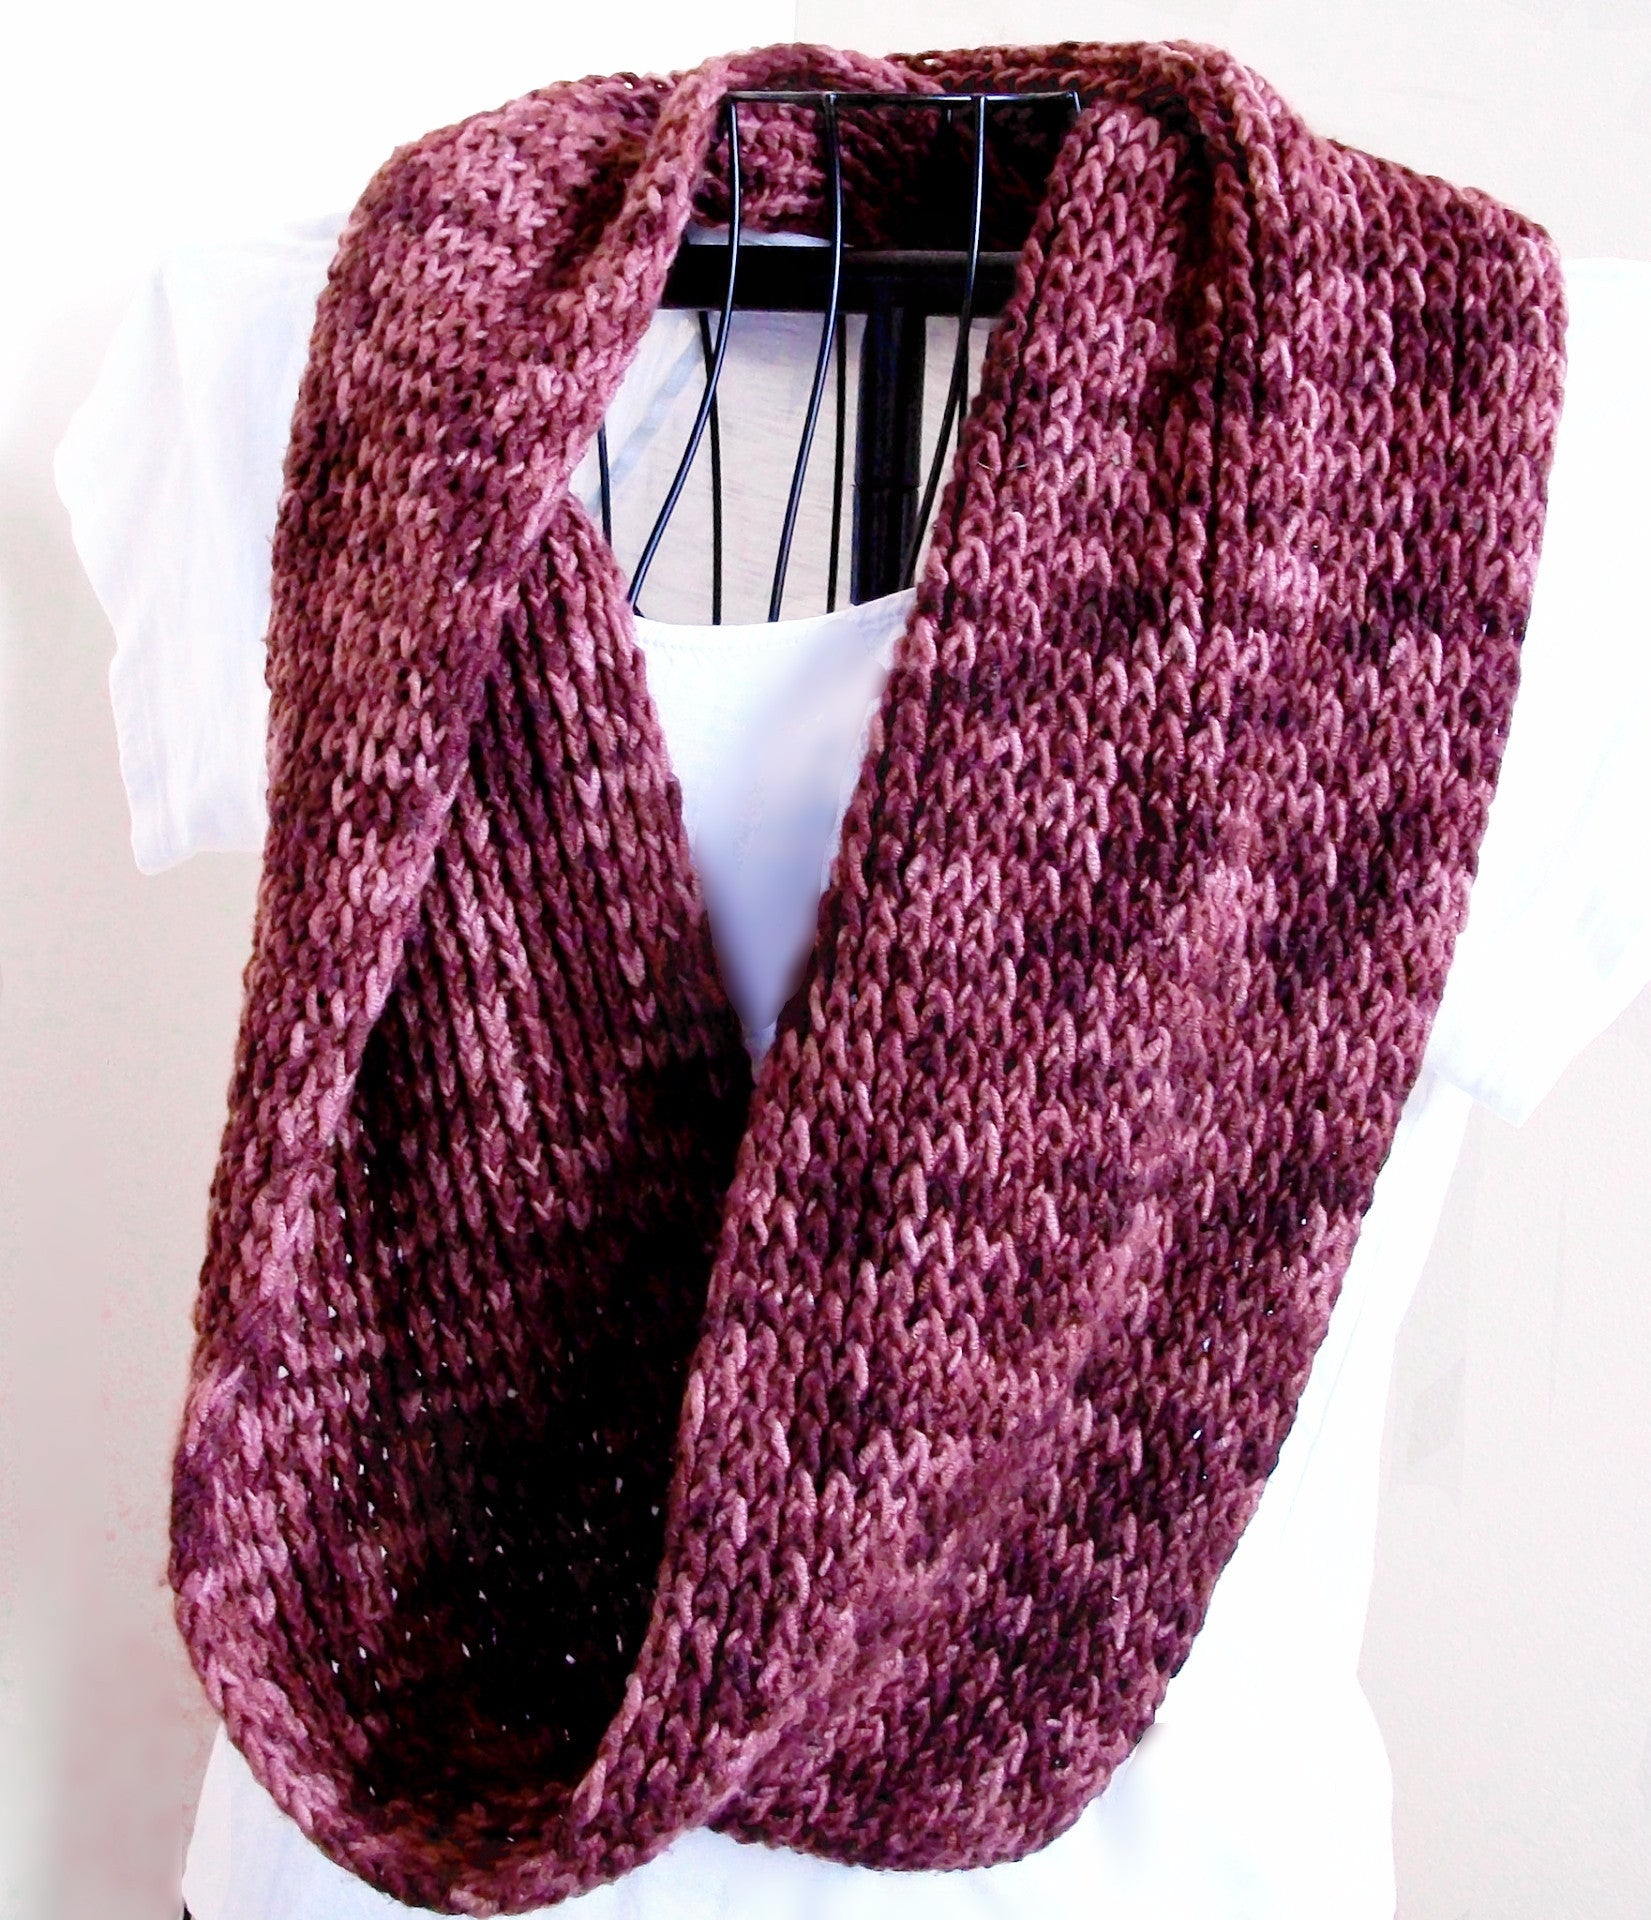 Knitting Patterns Ribbed Scarf : Pretty Twisted Ribbed Scarf Knitting Pattern   Bluestockinette